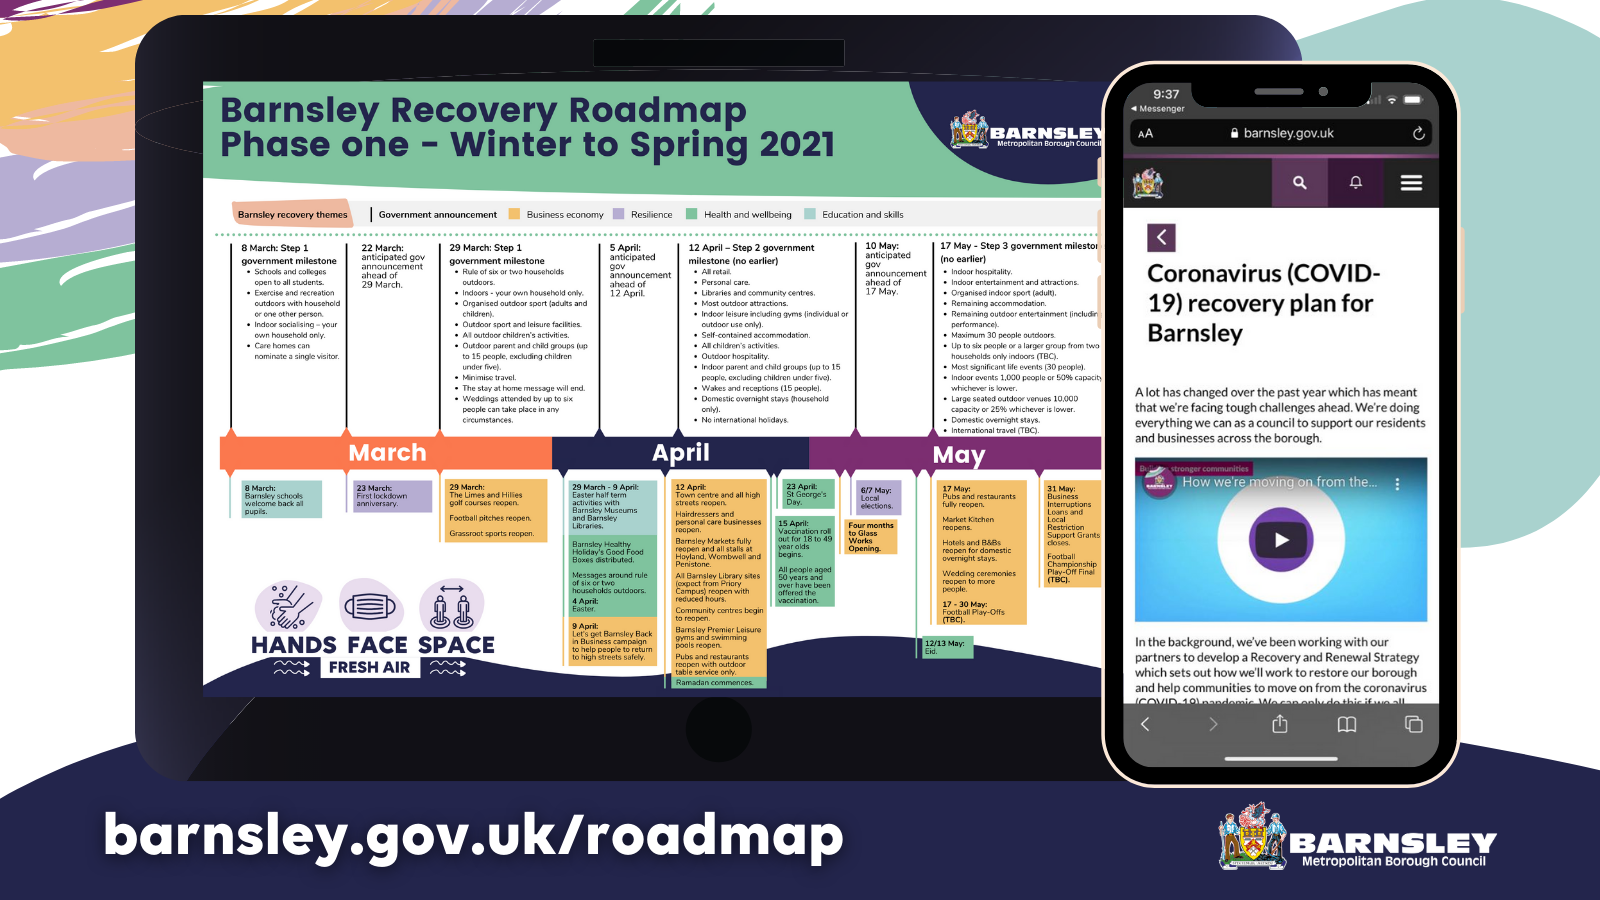 Image of Barnsley's recovery roadmap and webpage